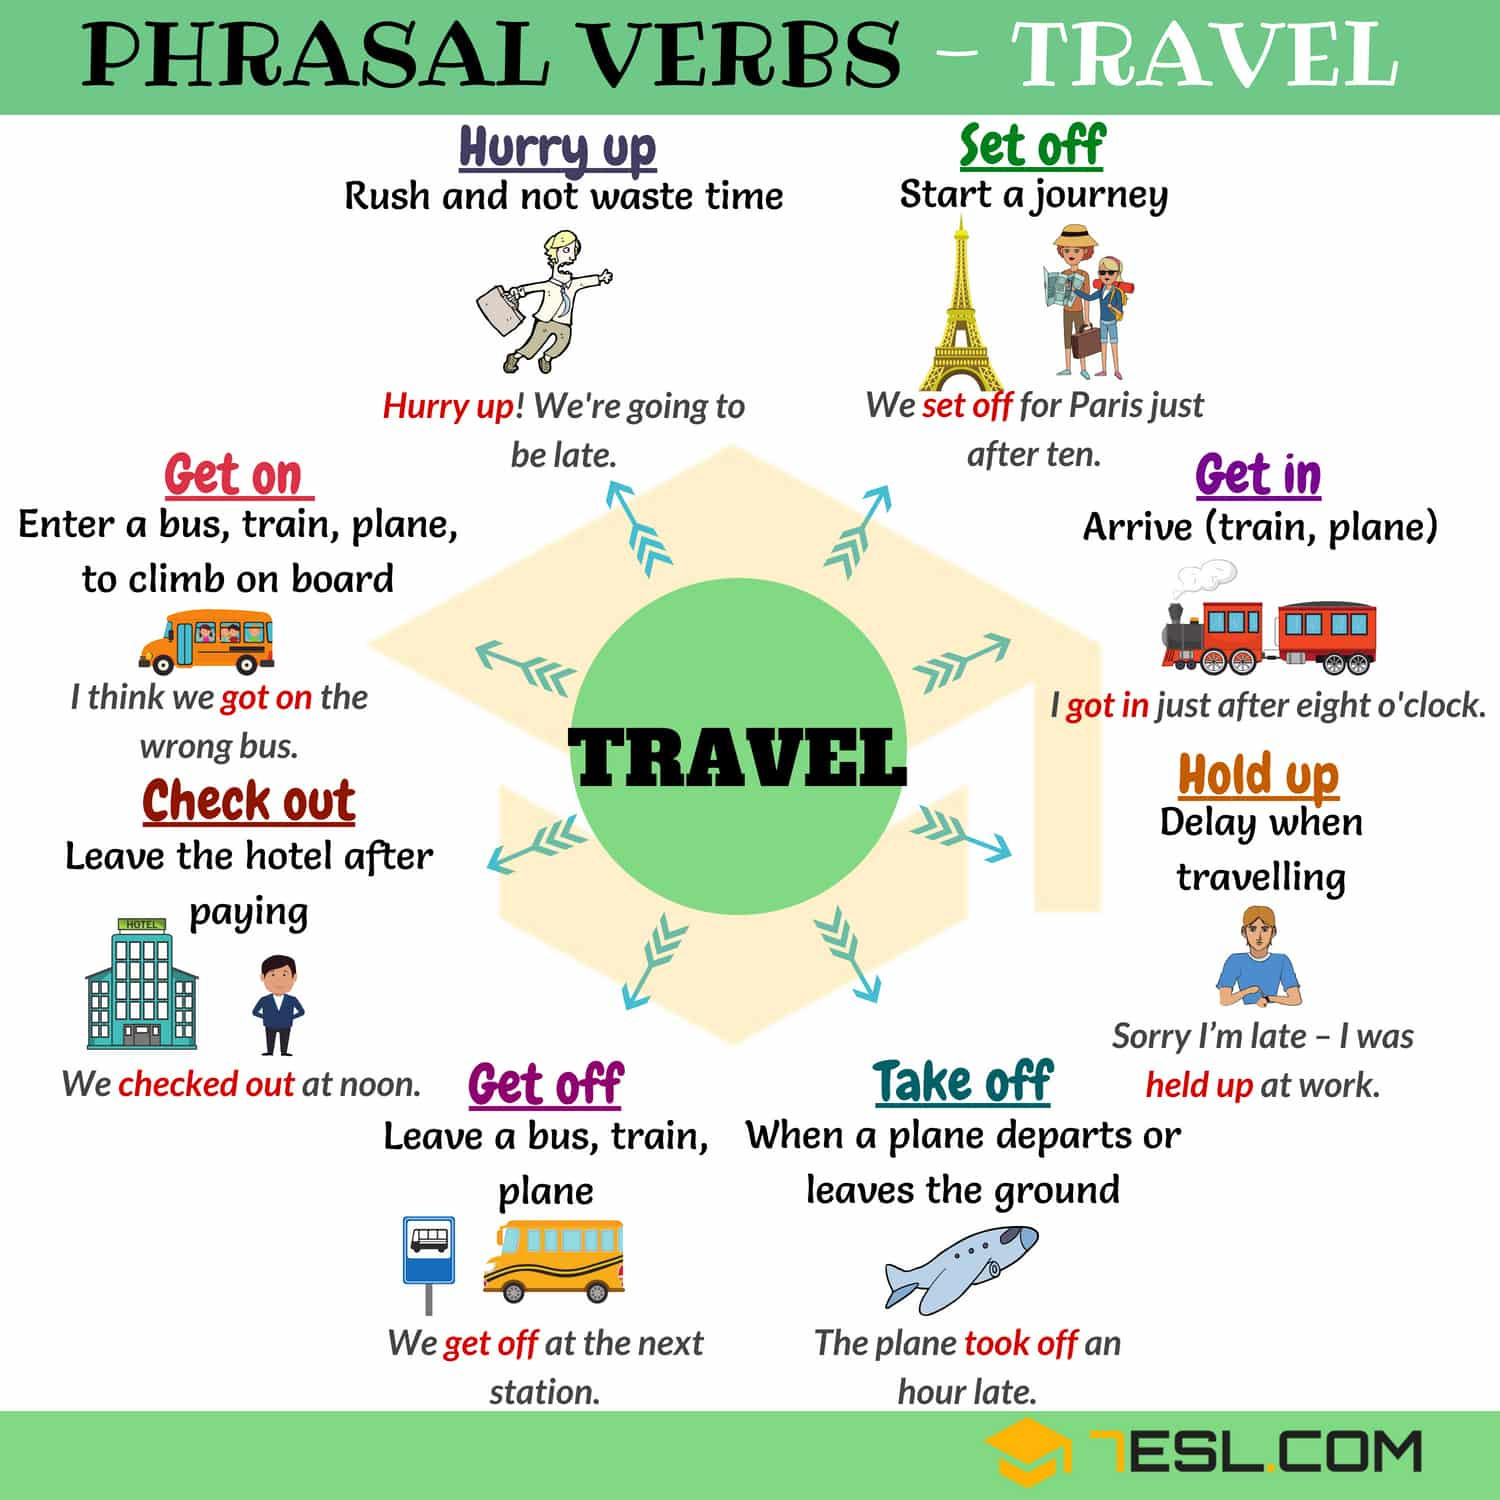 Phrasal Verbs List for Travel